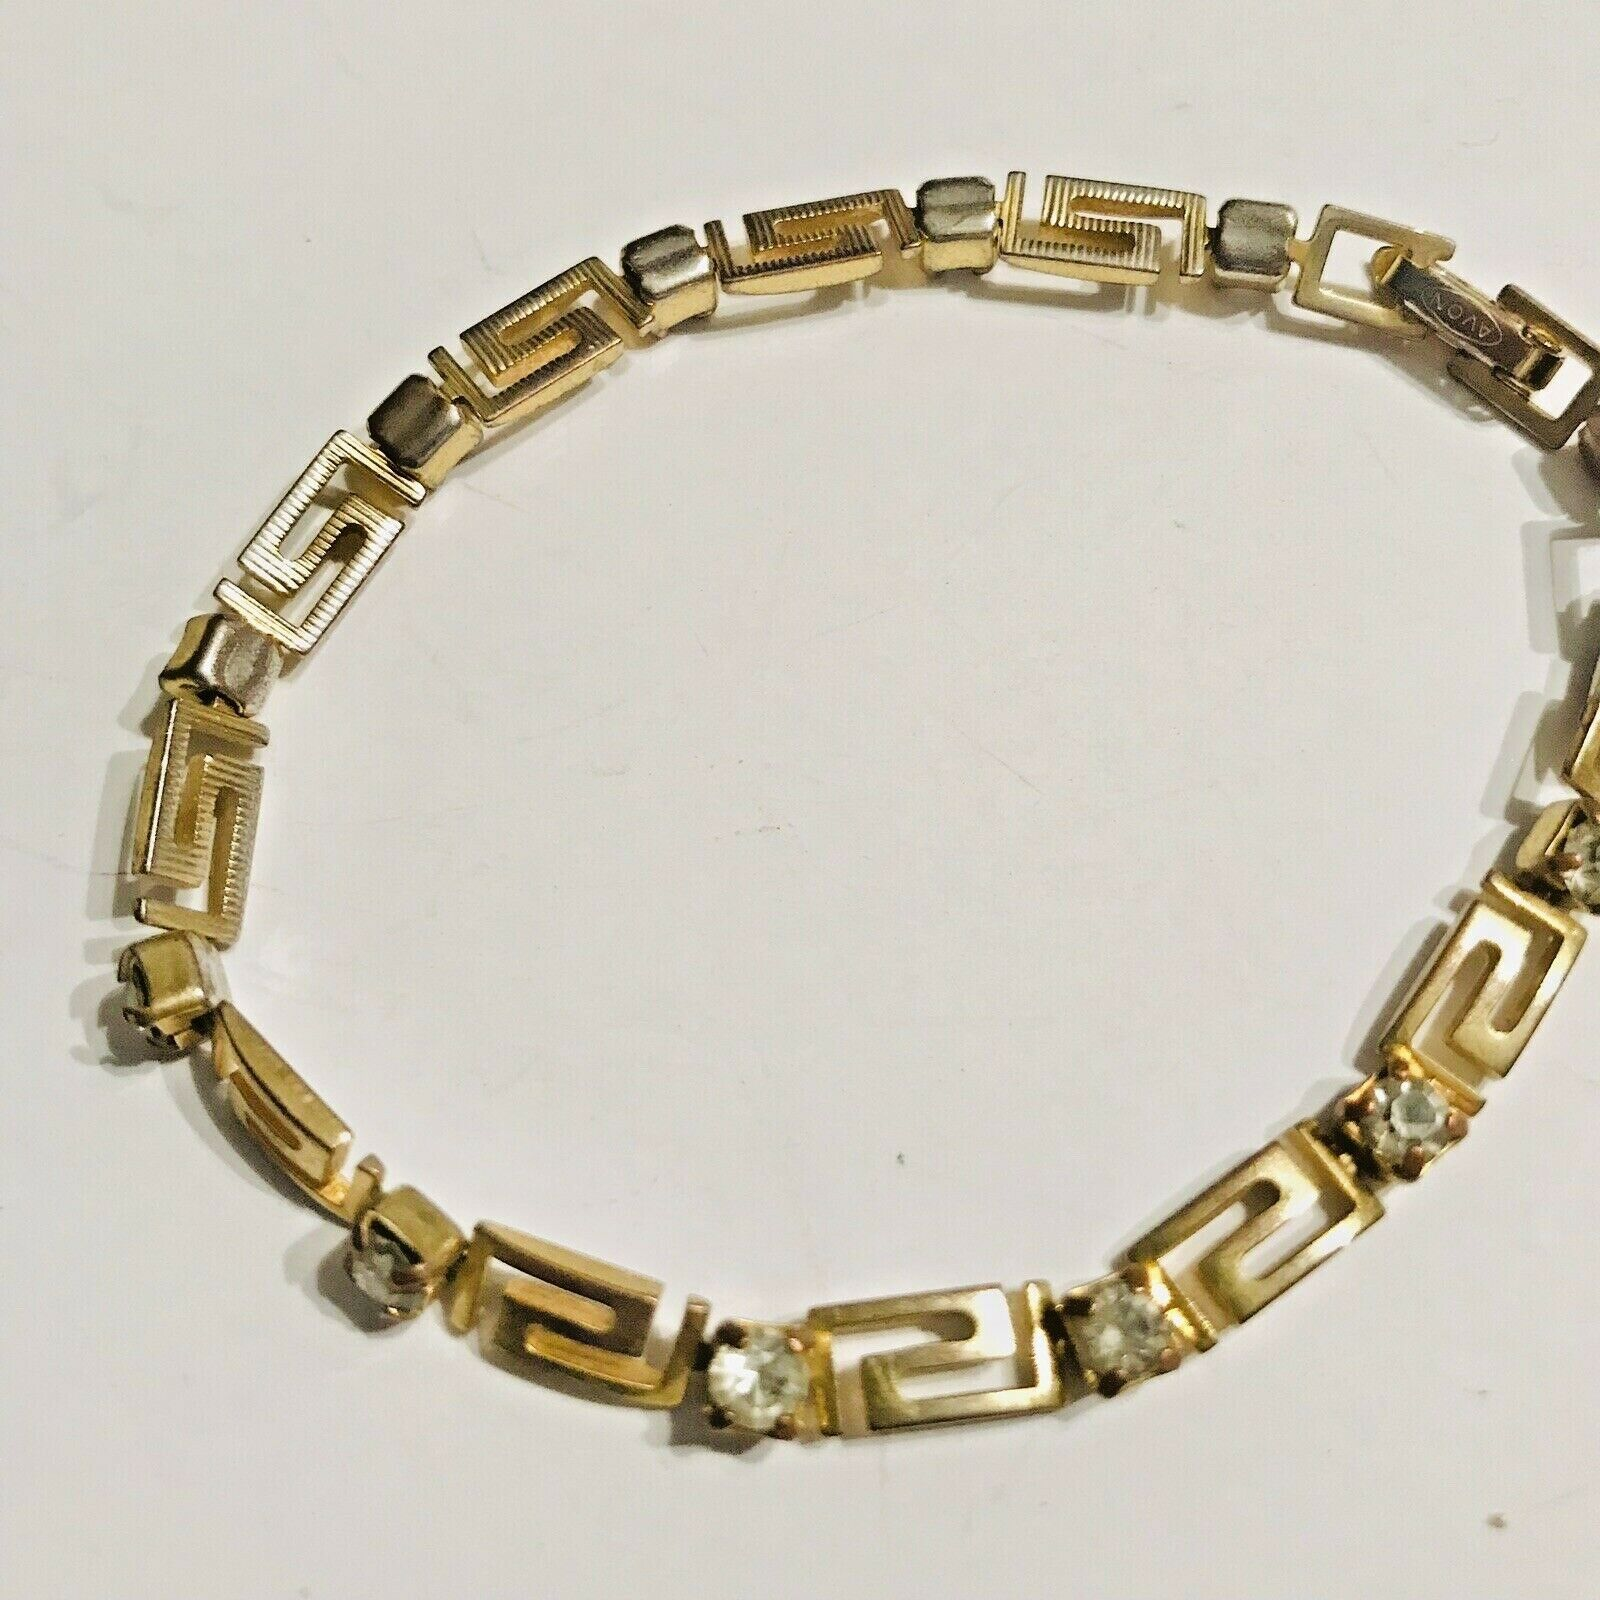 Primary image for Vintage Avon Tennis Bracelet Gold Tone & CZ Scroll Work Design J0691